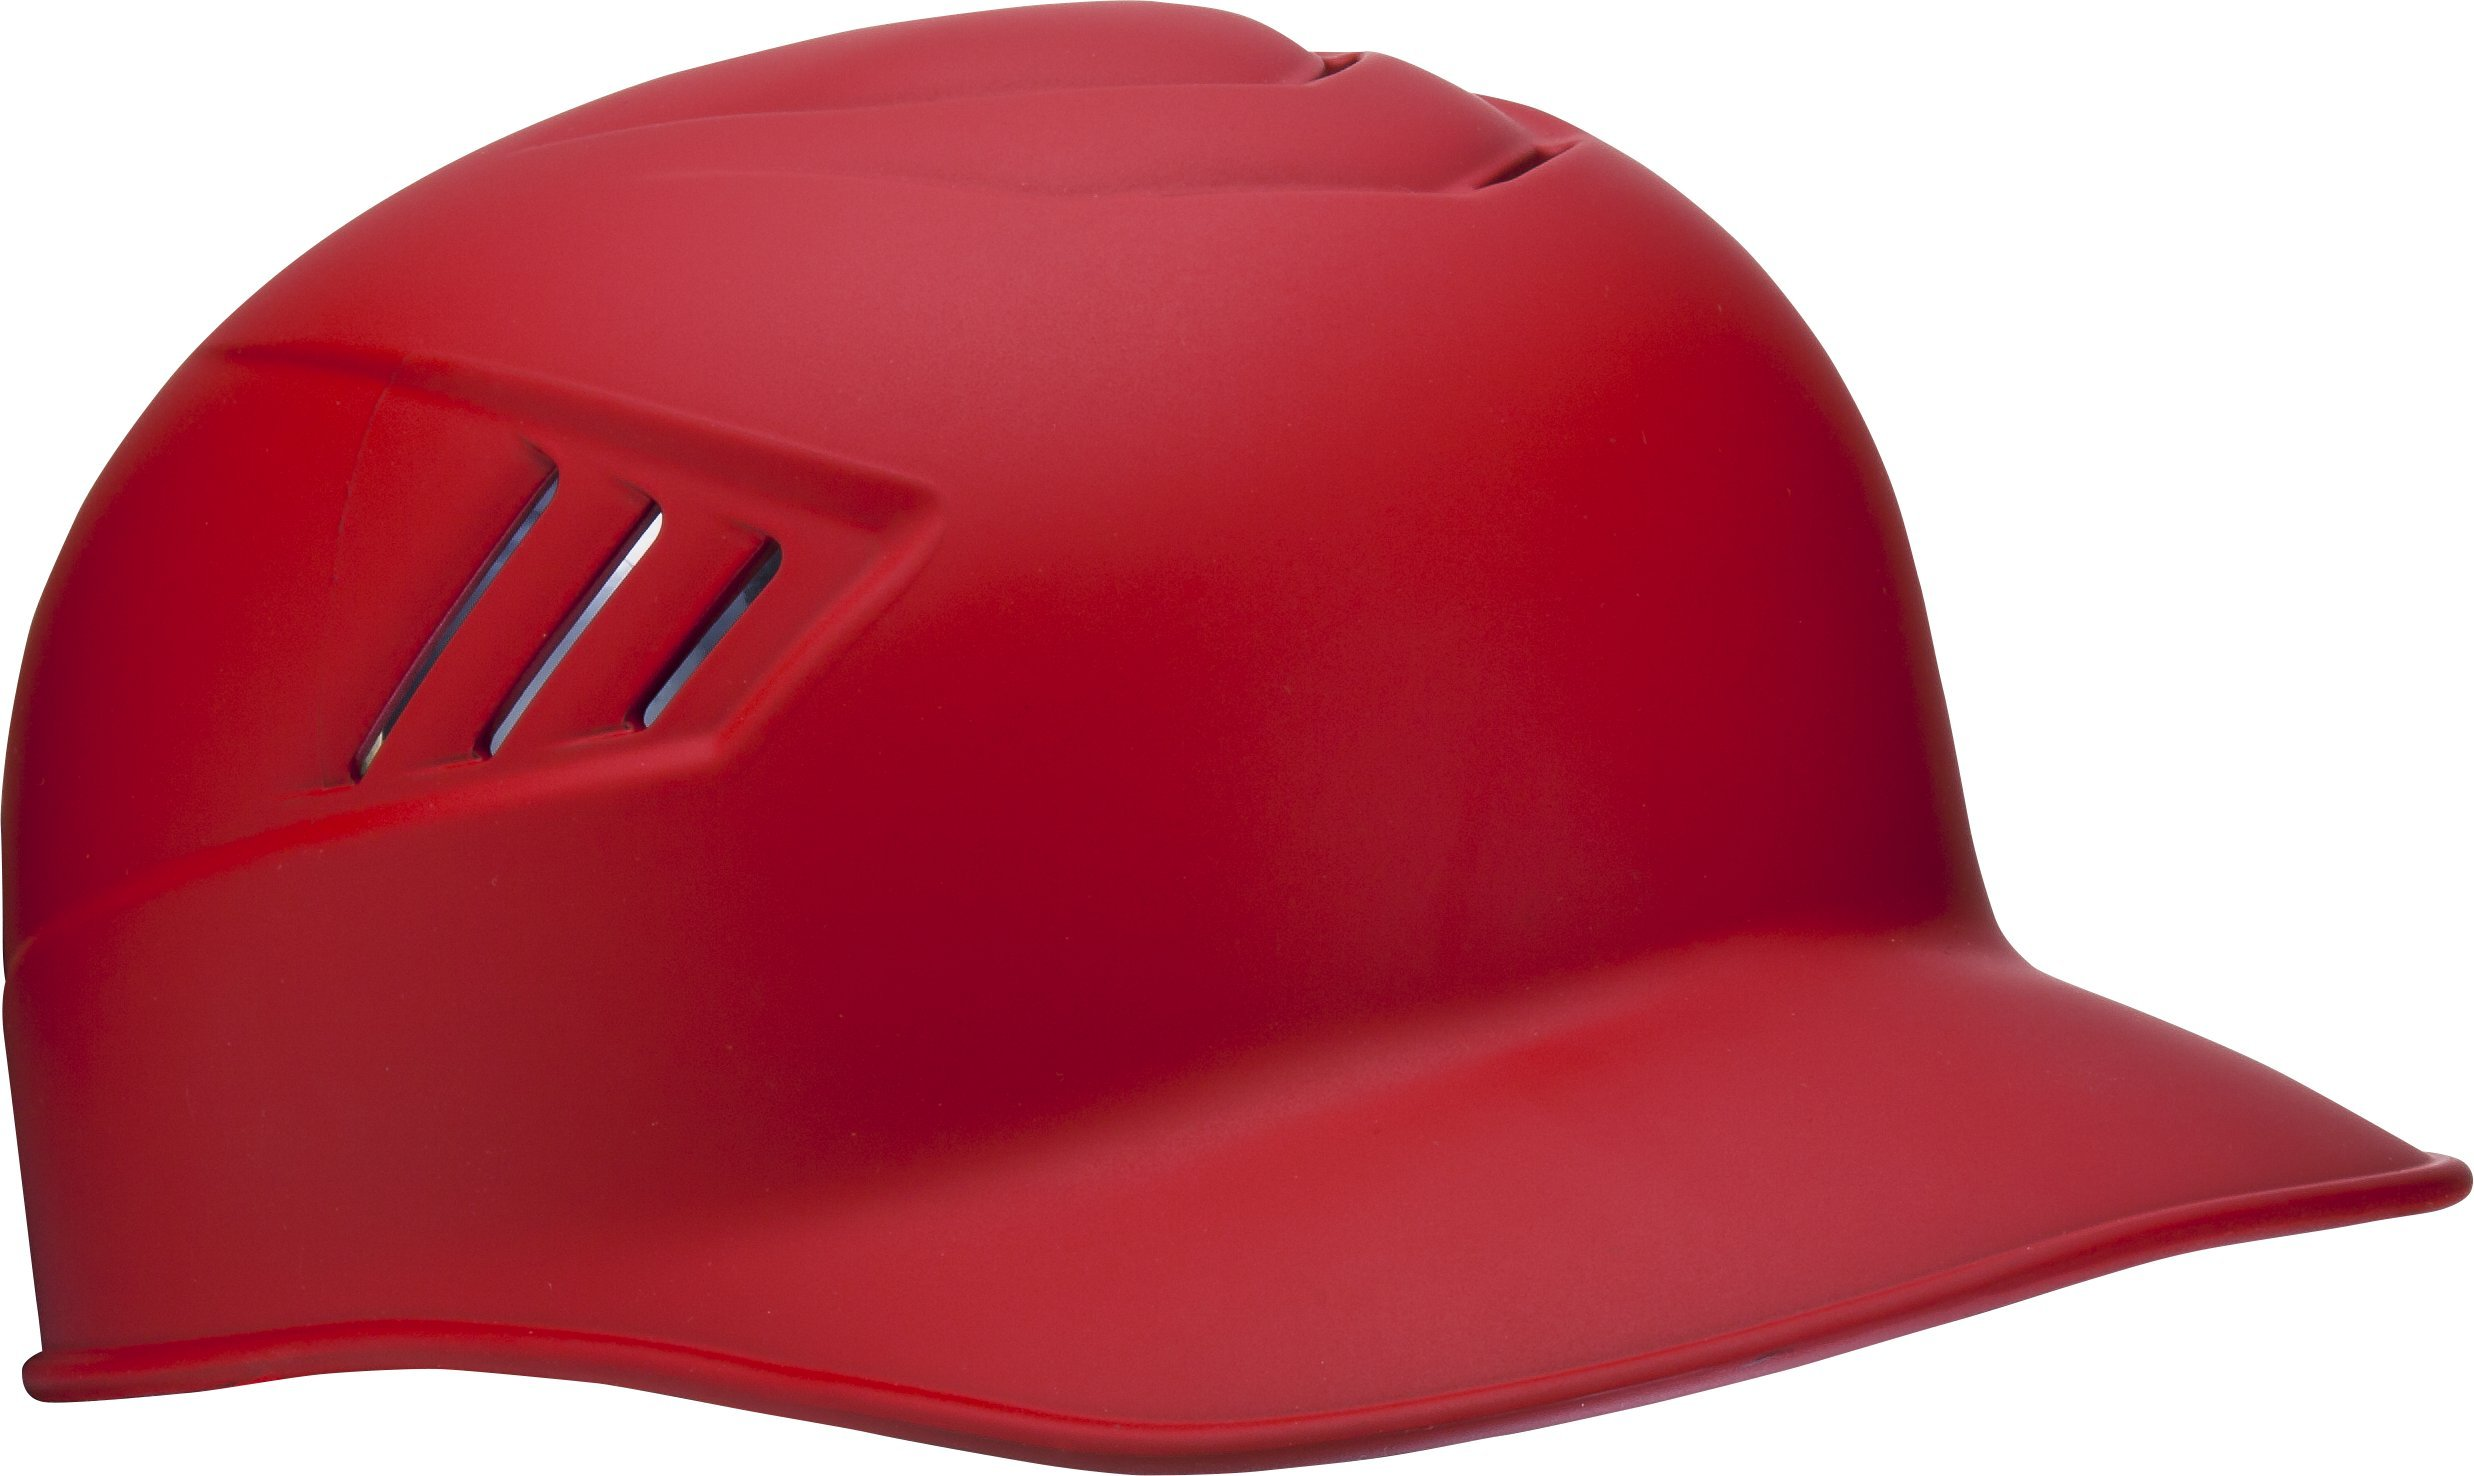 Rawlings Coolflo Matte Style Alpha Sized Base Coach Helmet, Scarlet, X-Large by RAWLINGS